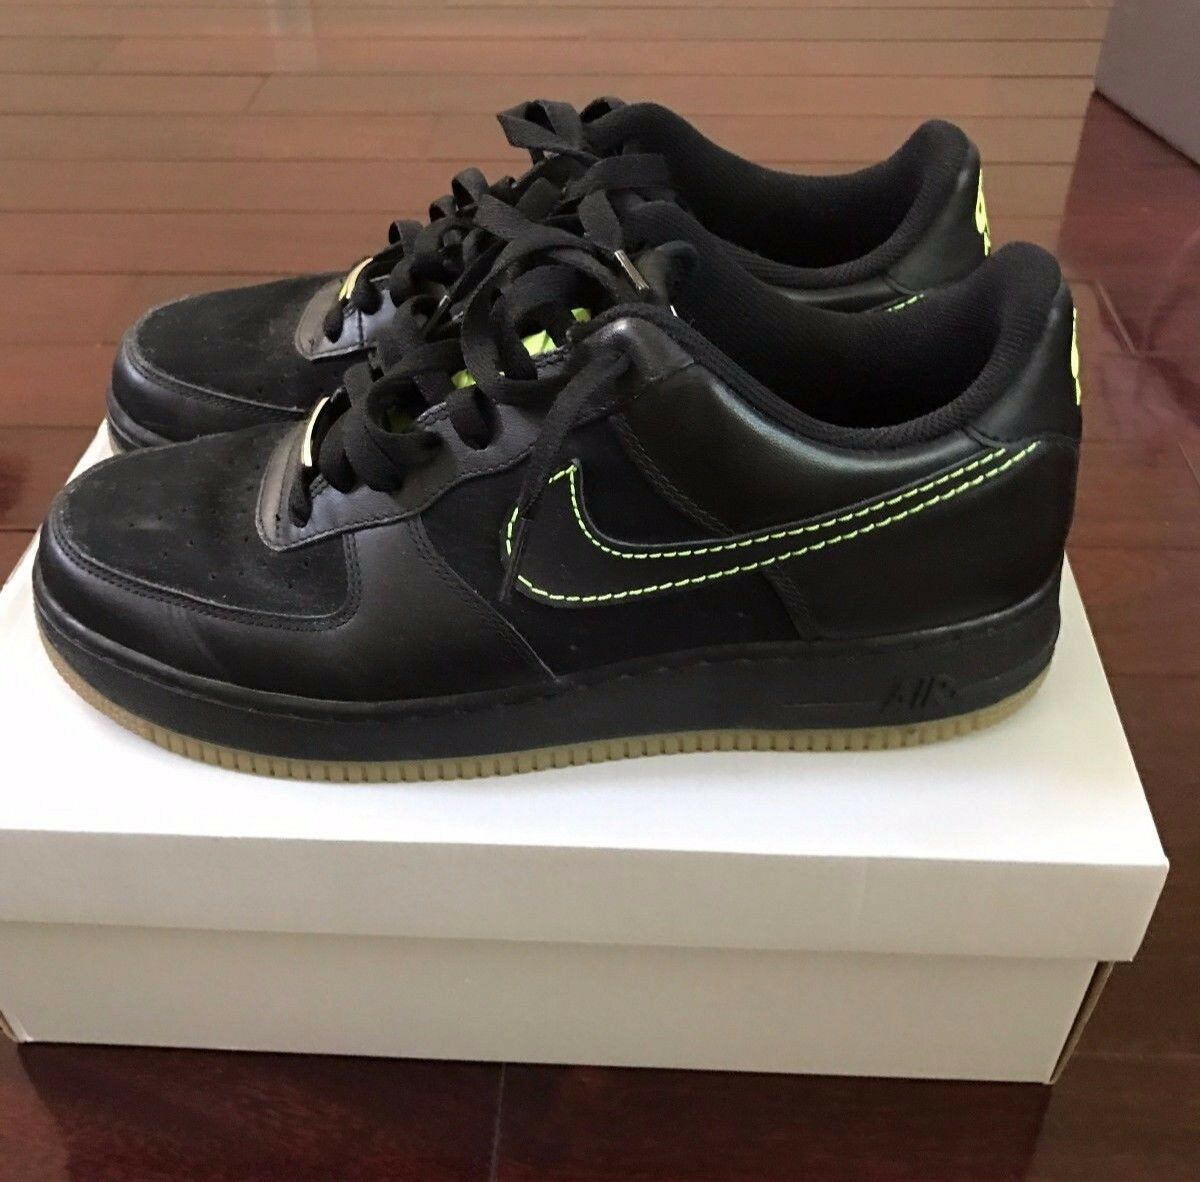 Nike Air Force One 1 Low '07 Black Volt Size 10